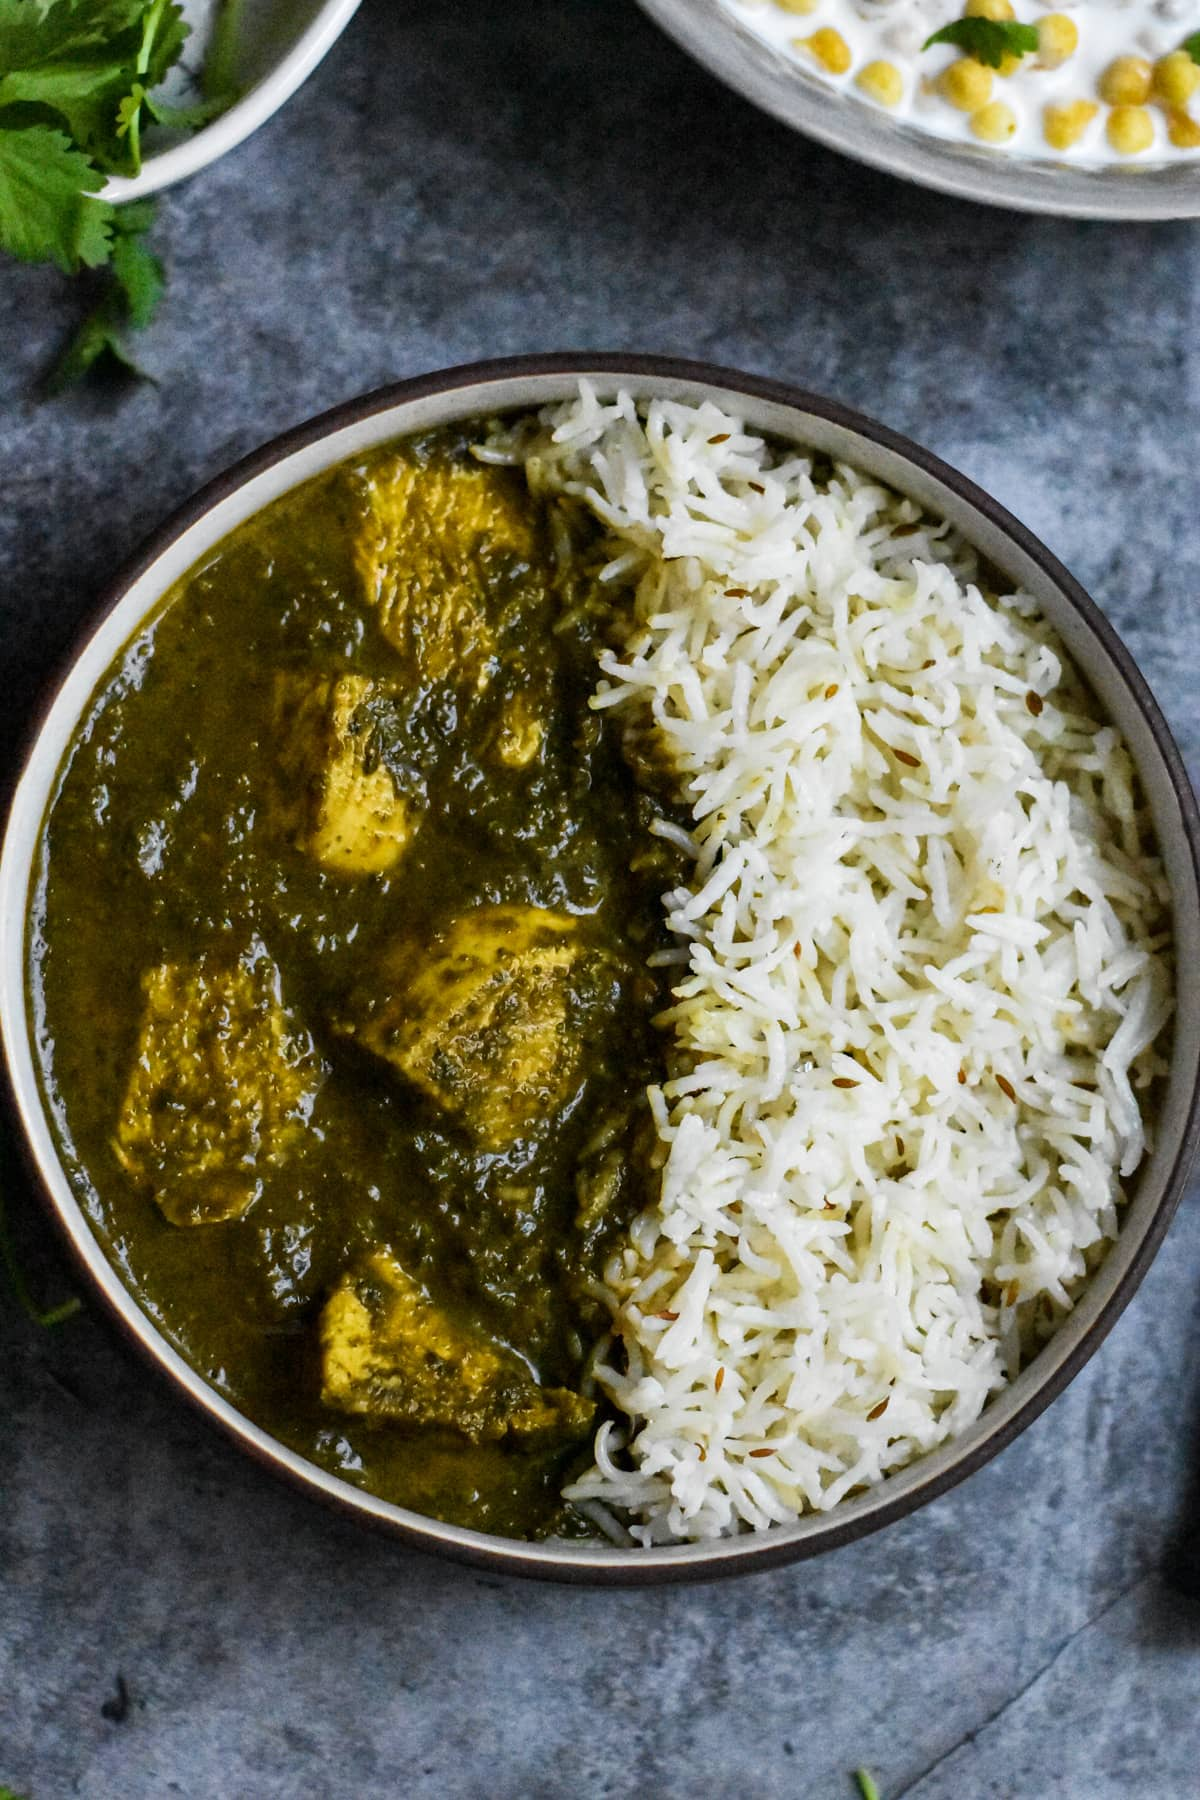 Chicken and spinach curry, Chicken Saag, served in a grey bowl